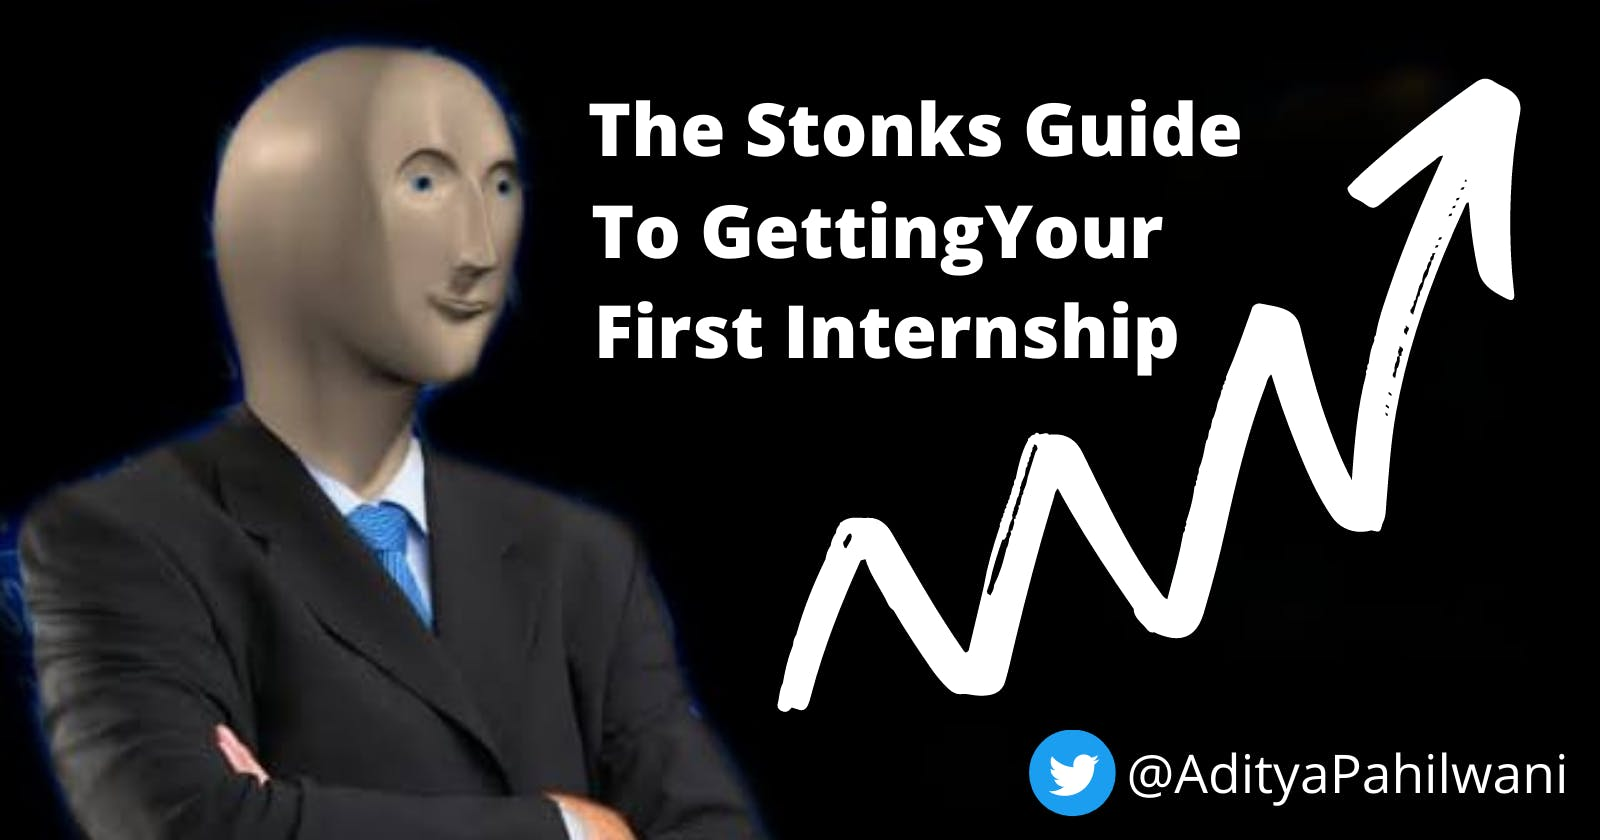 The Stonks Guide To Getting Your First Internship